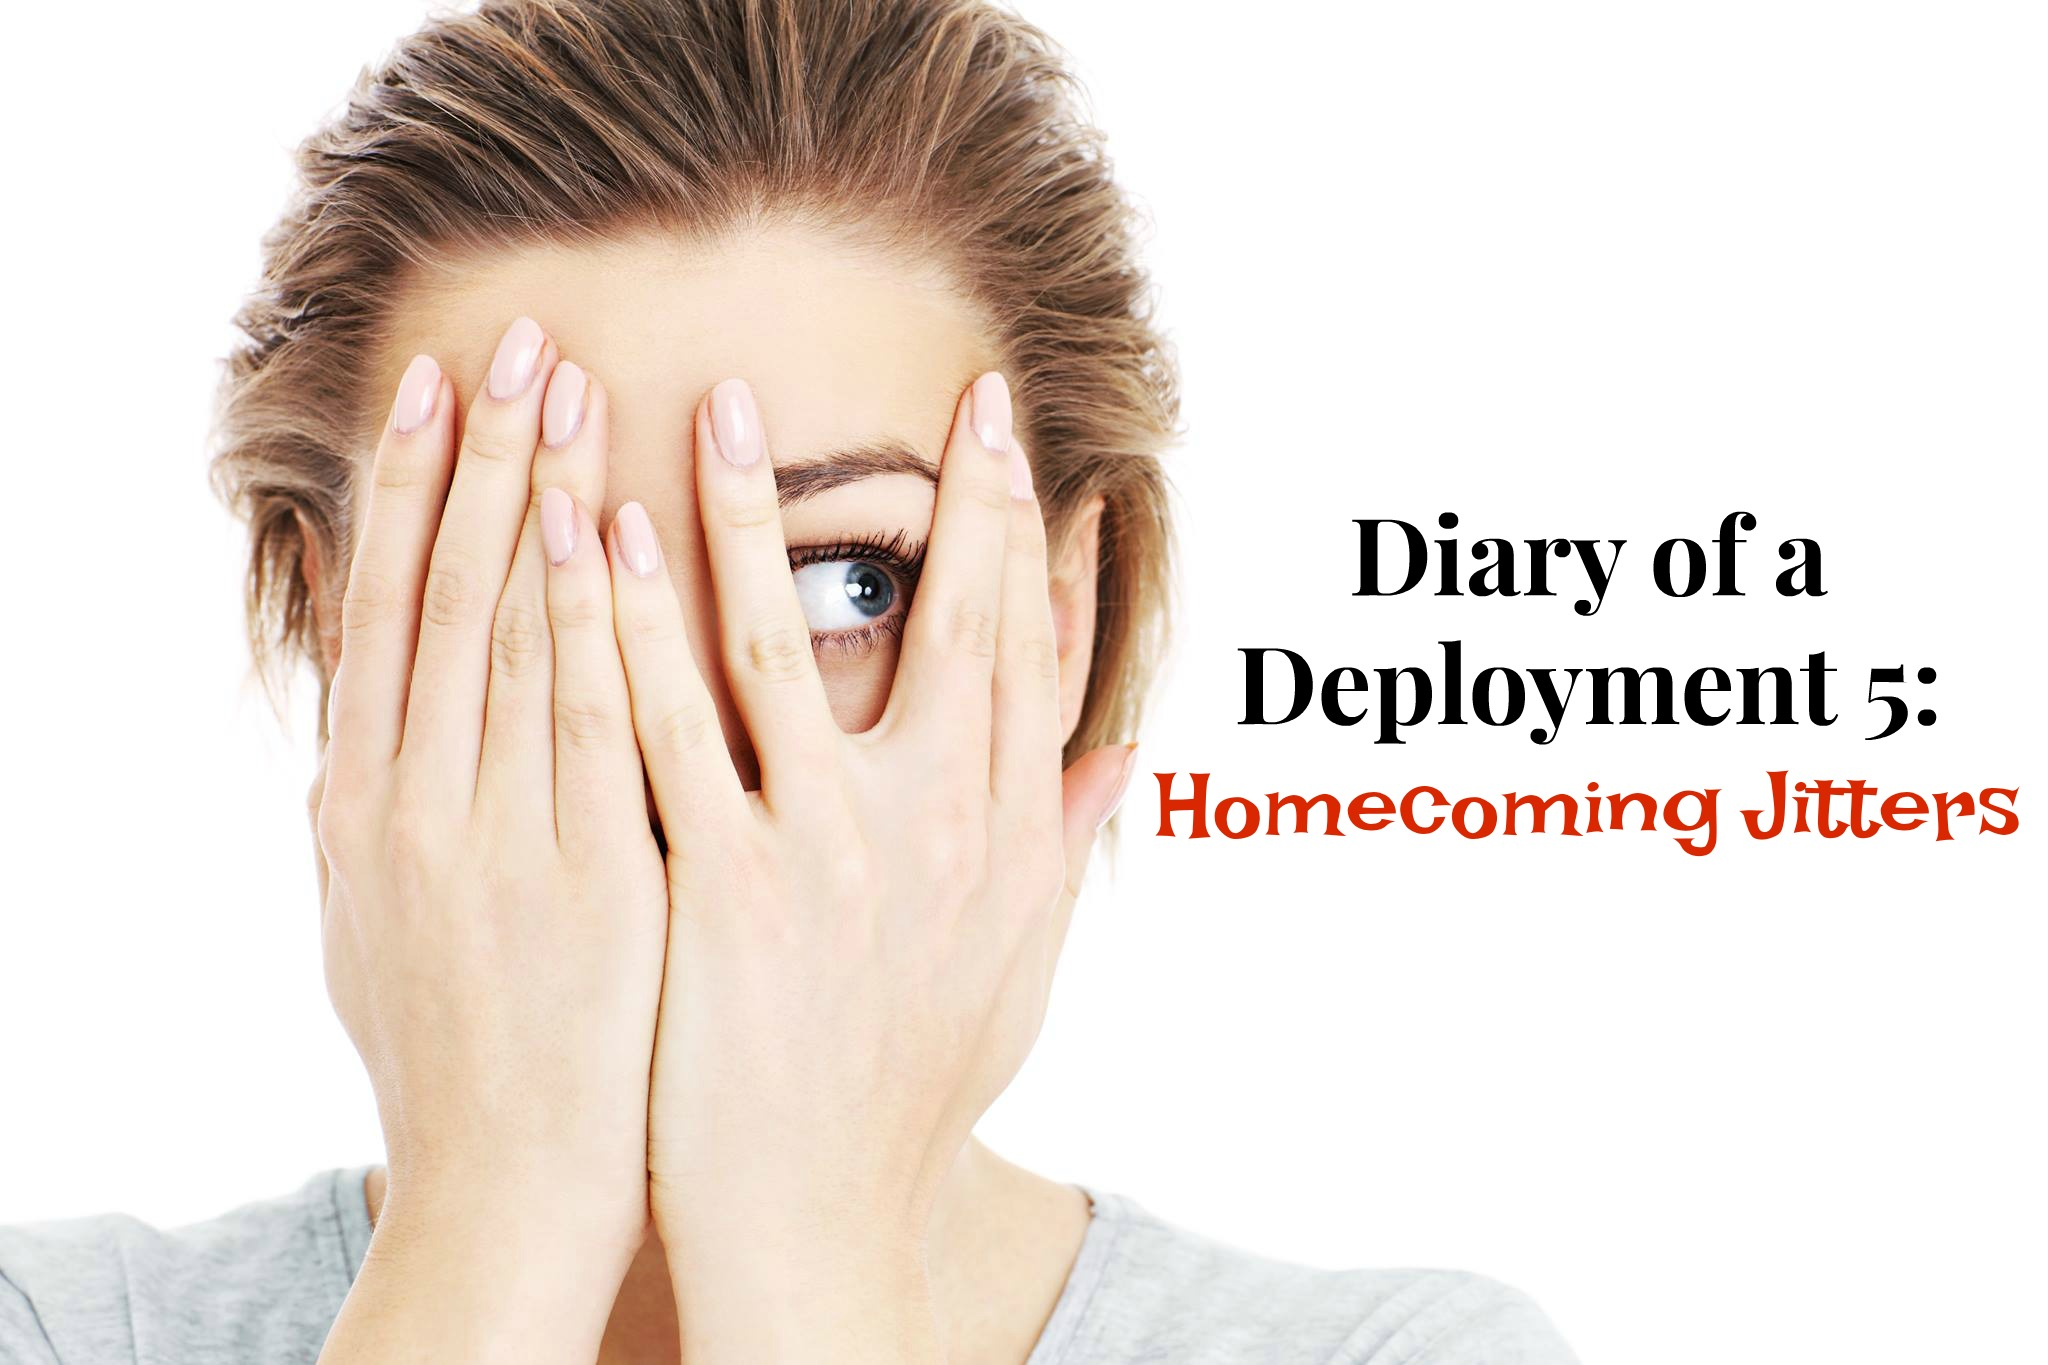 Diary of a Deployment 5: Homecoming Jitters